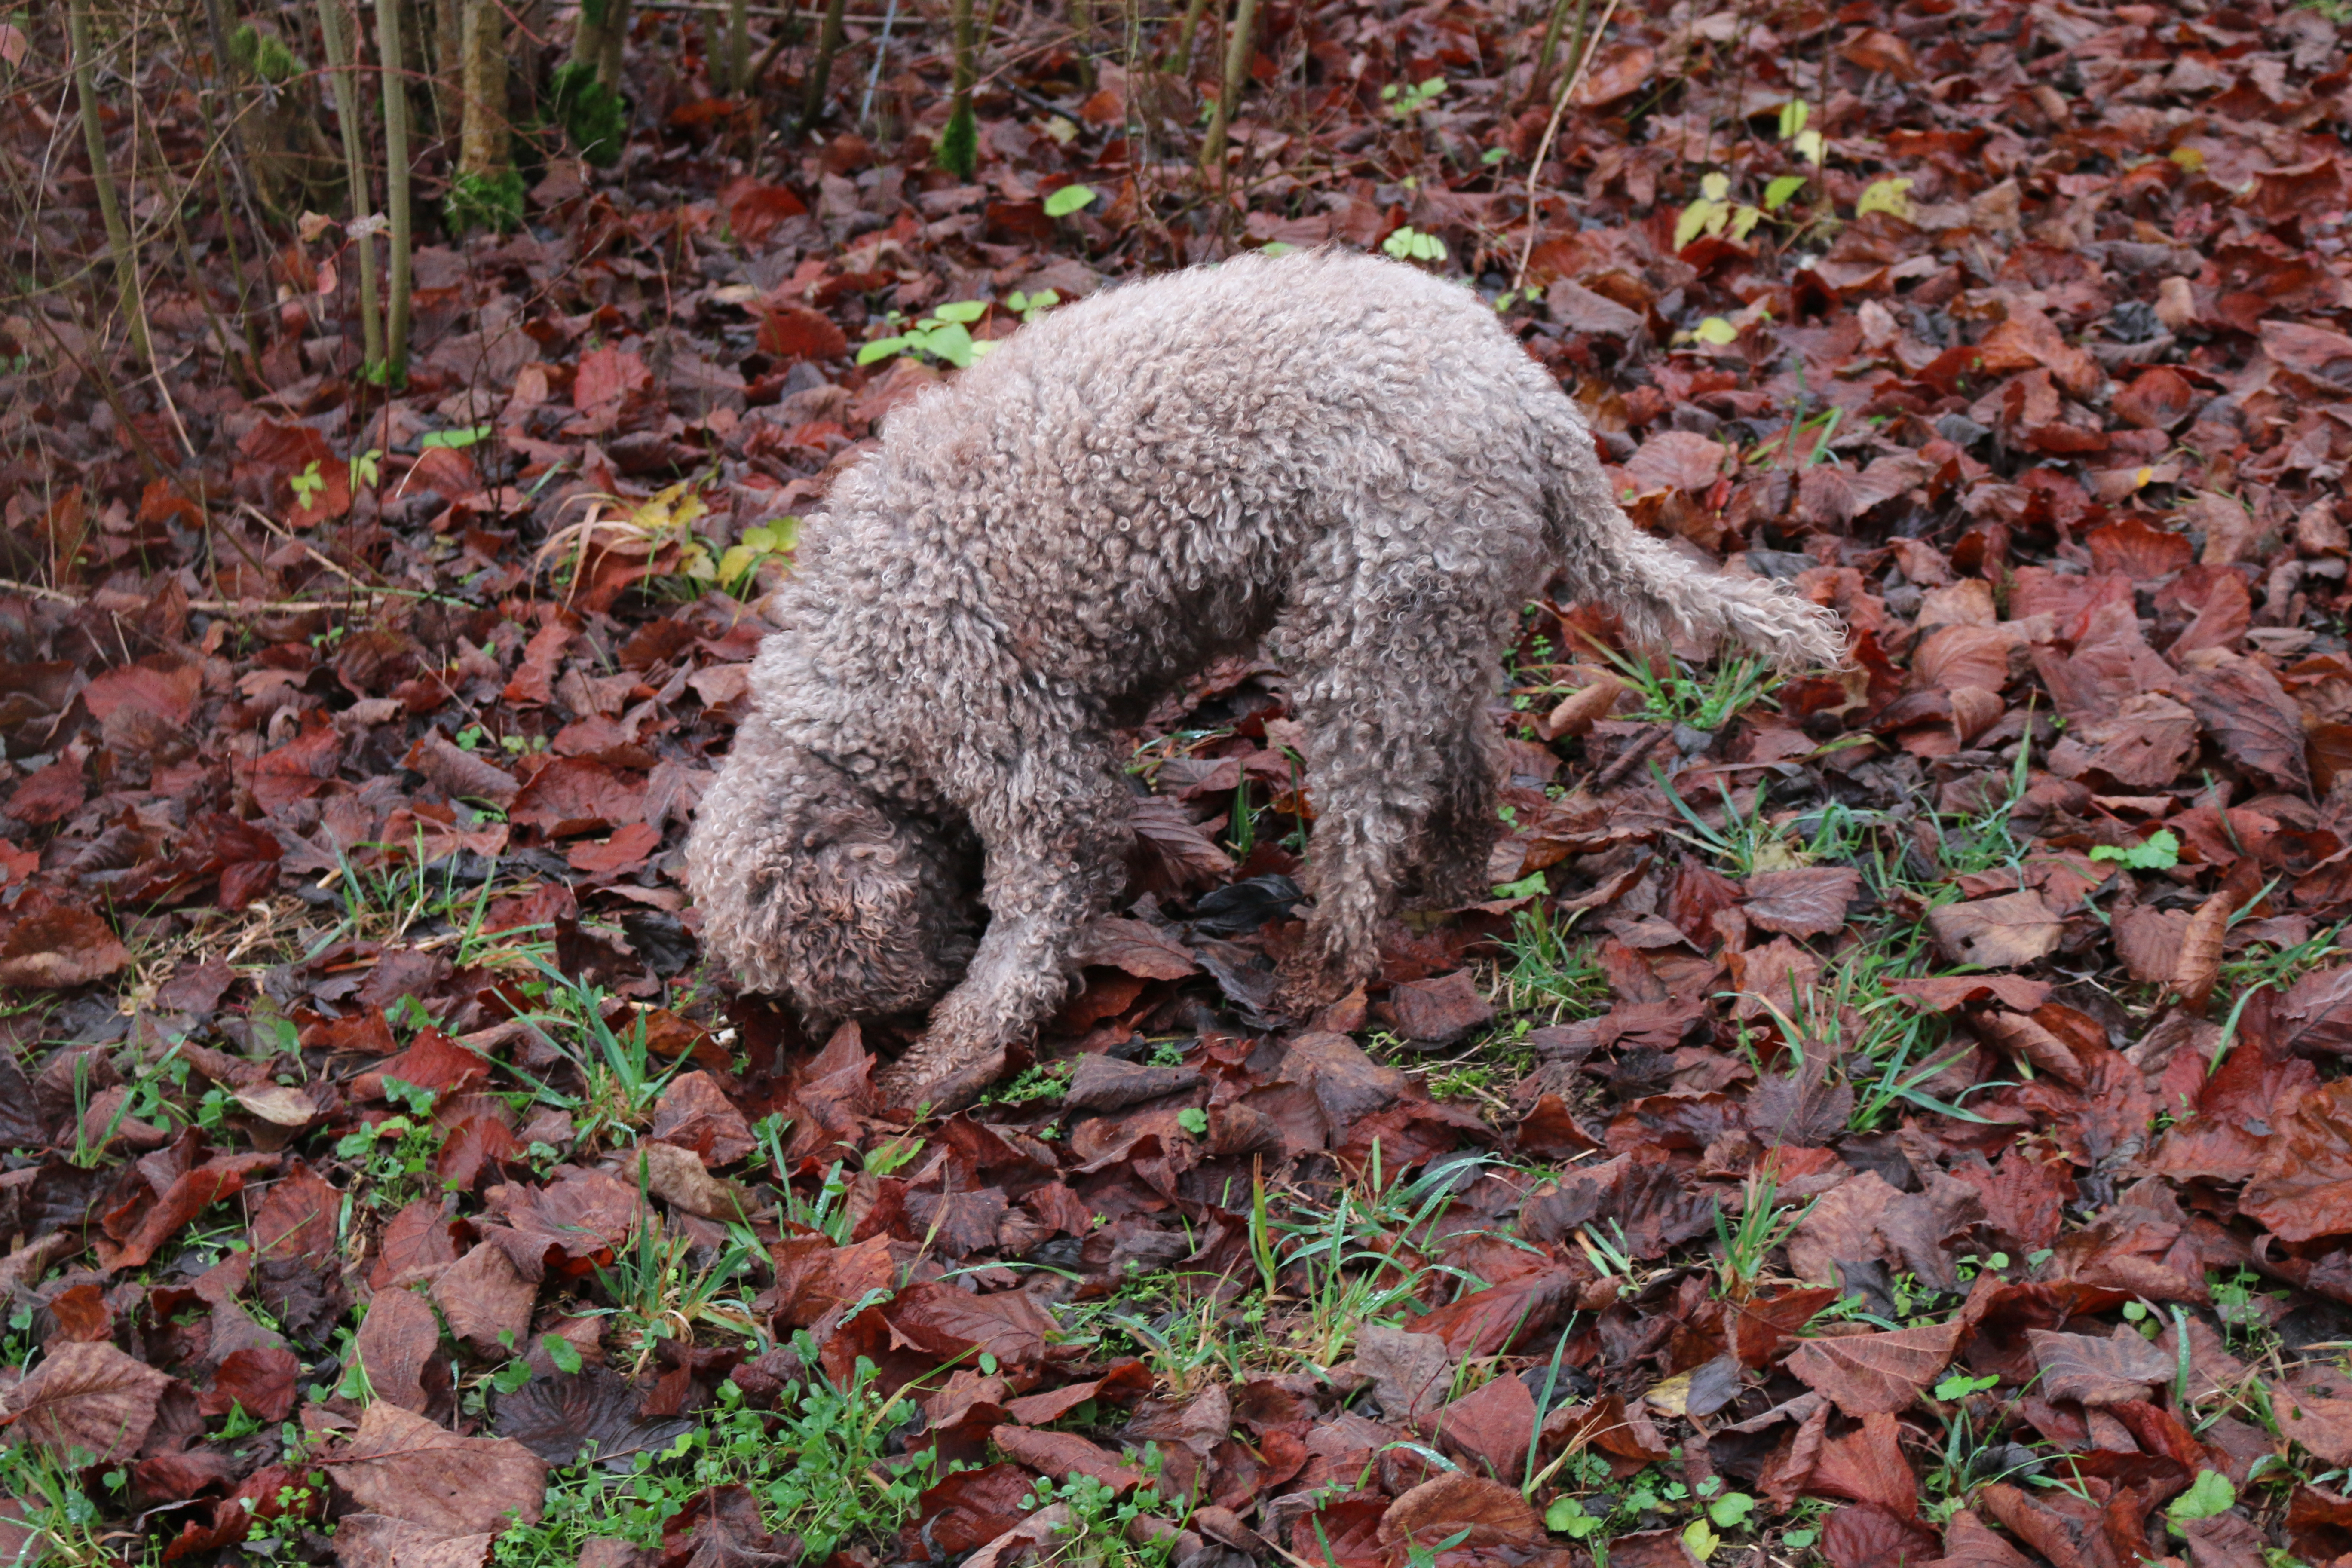 Biloba, a Lagotto Romagnolo bred primarily as a truffle-searching dog